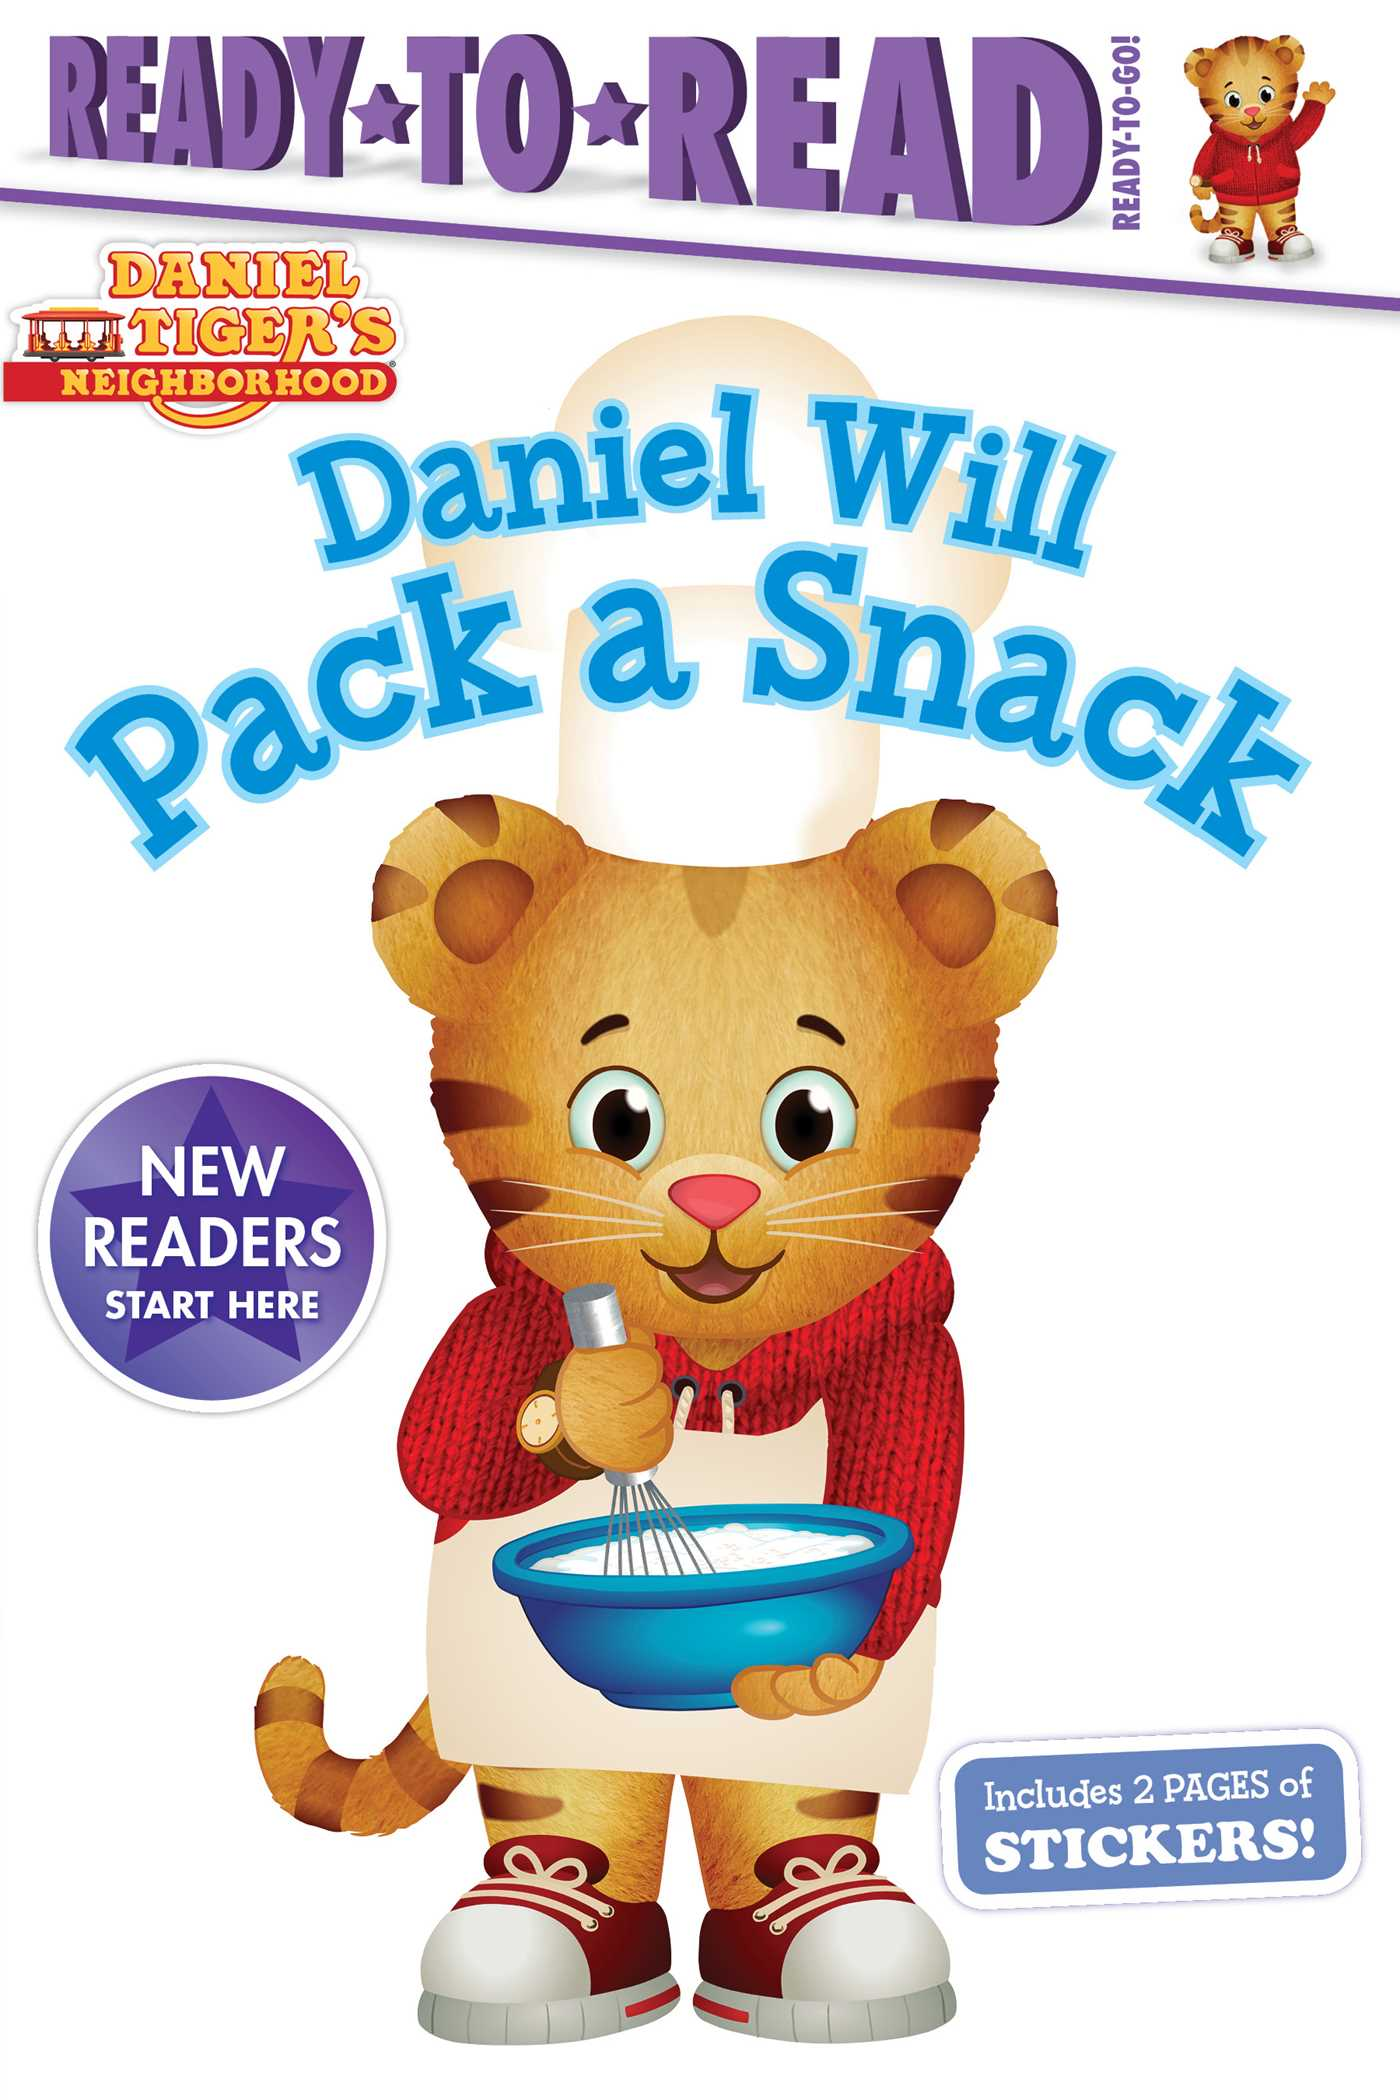 Daniel will pack a snack 9781534411173 hr